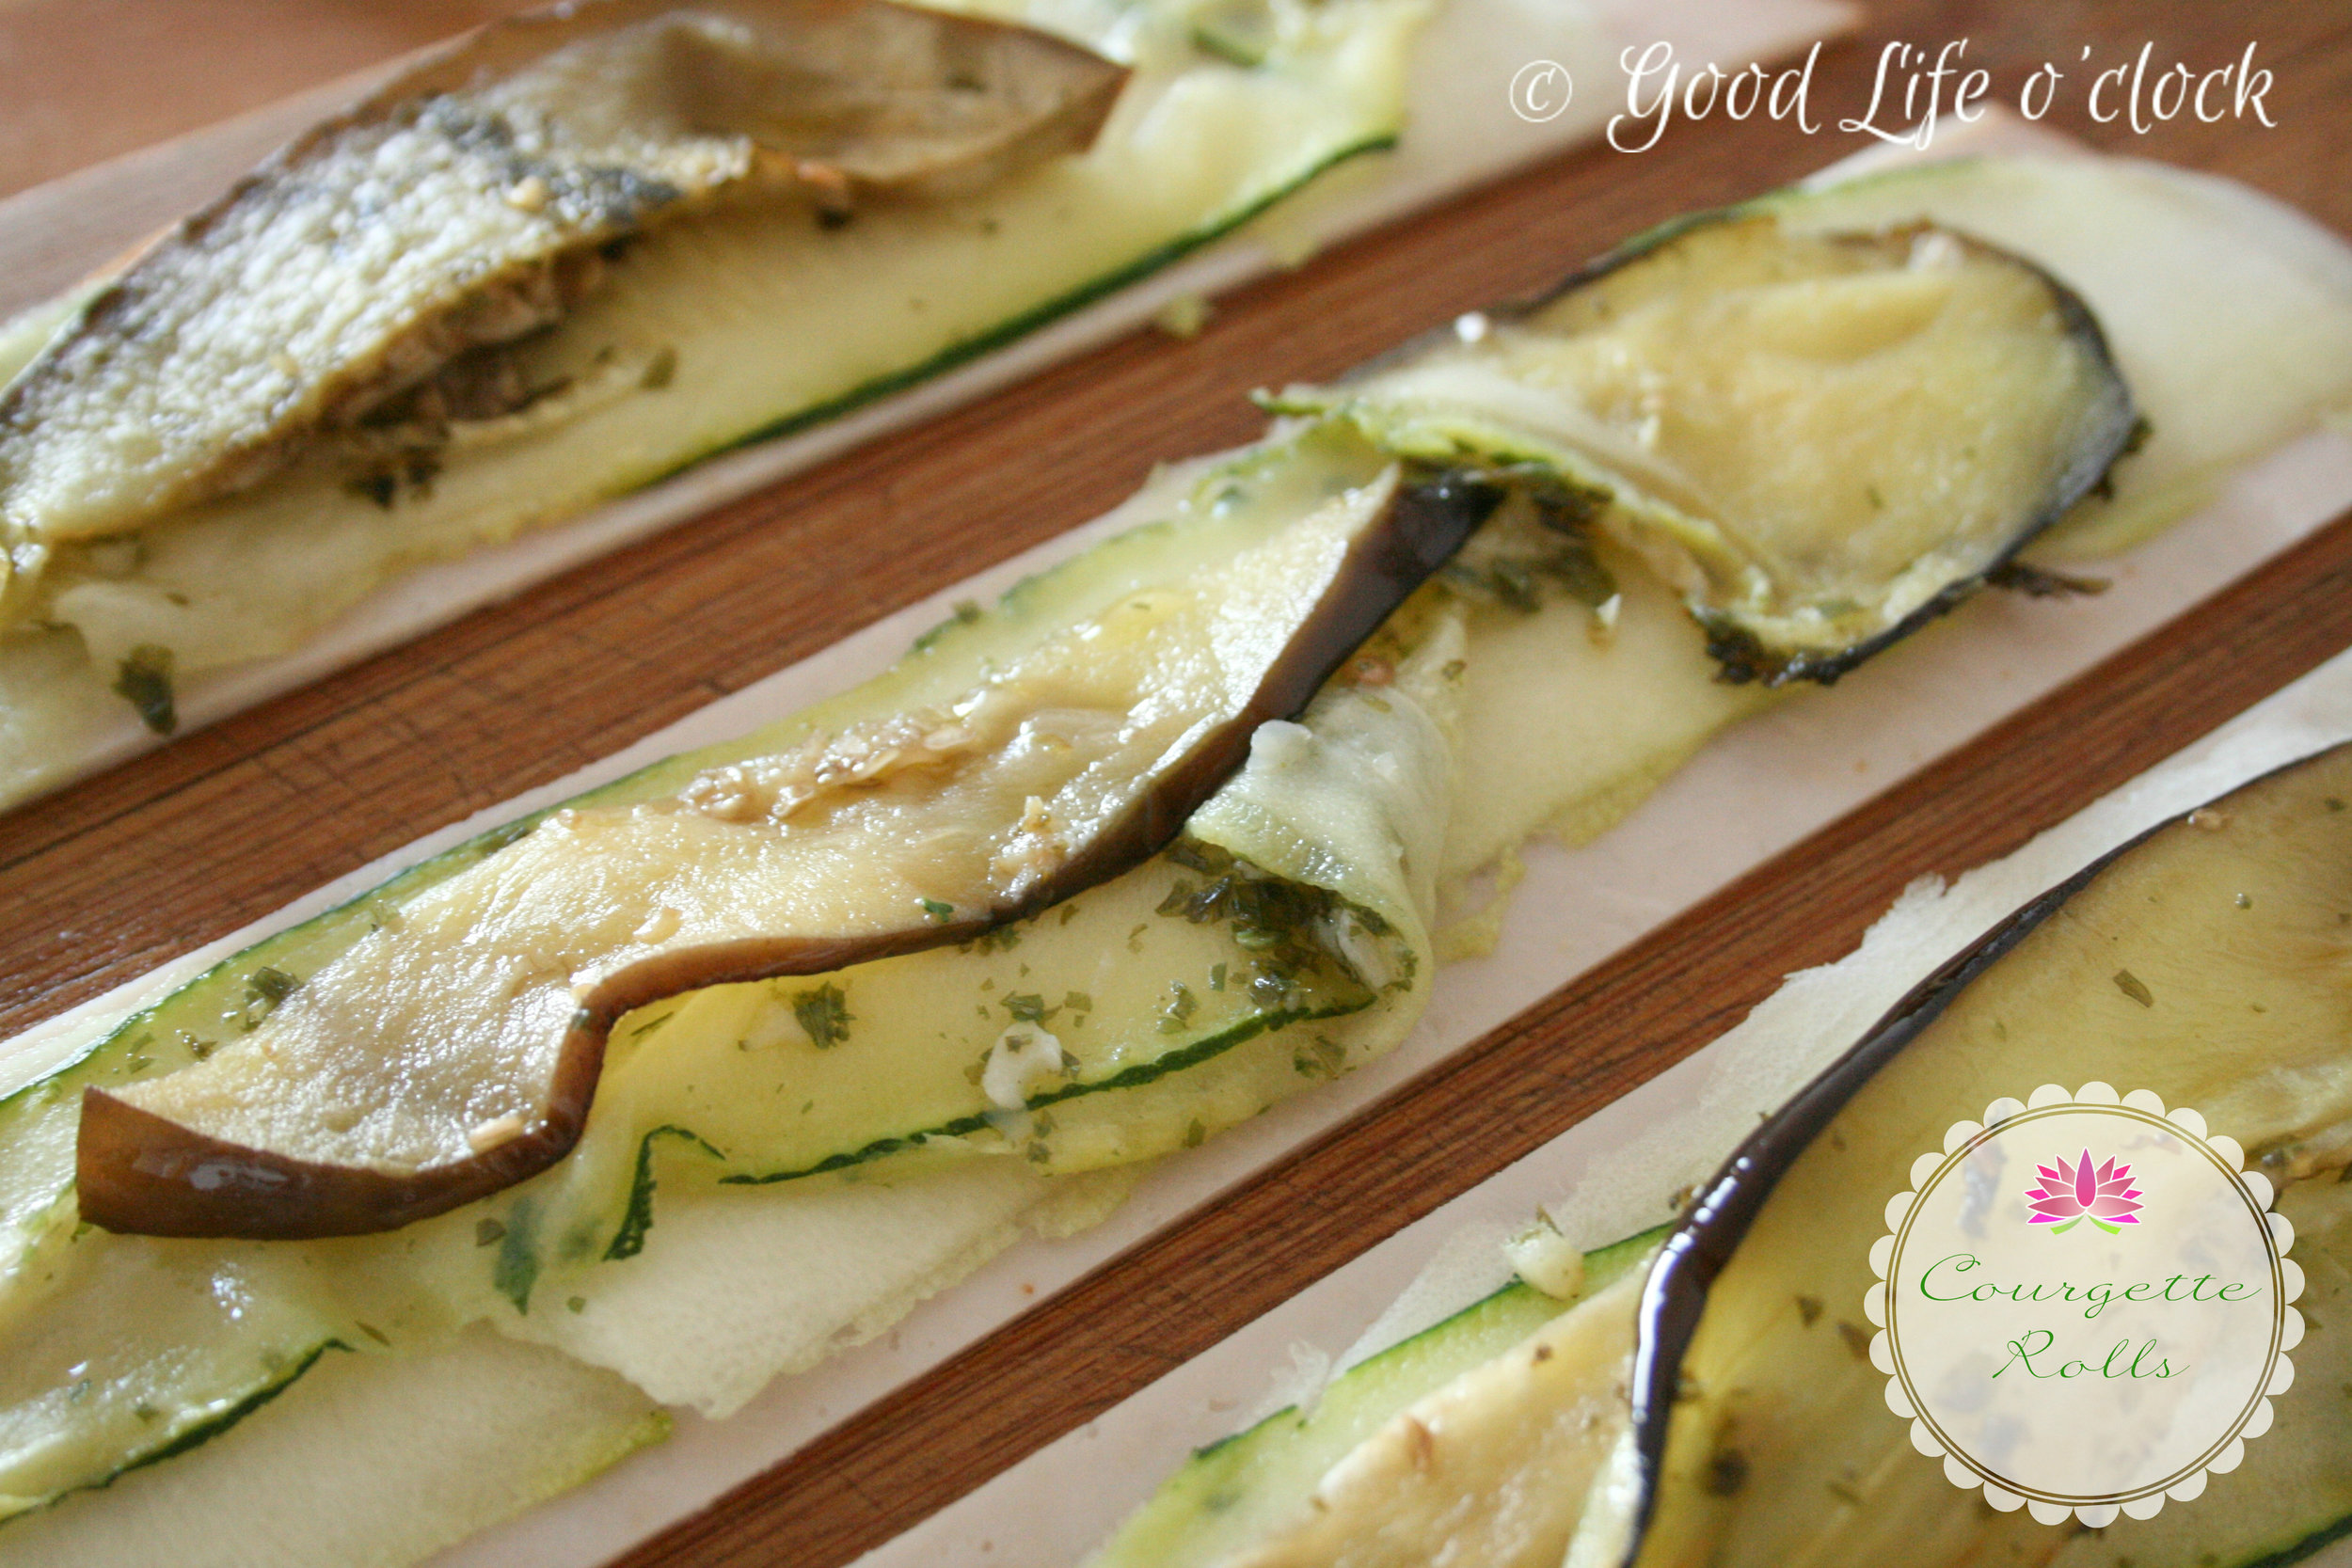 Courgette rolls 3